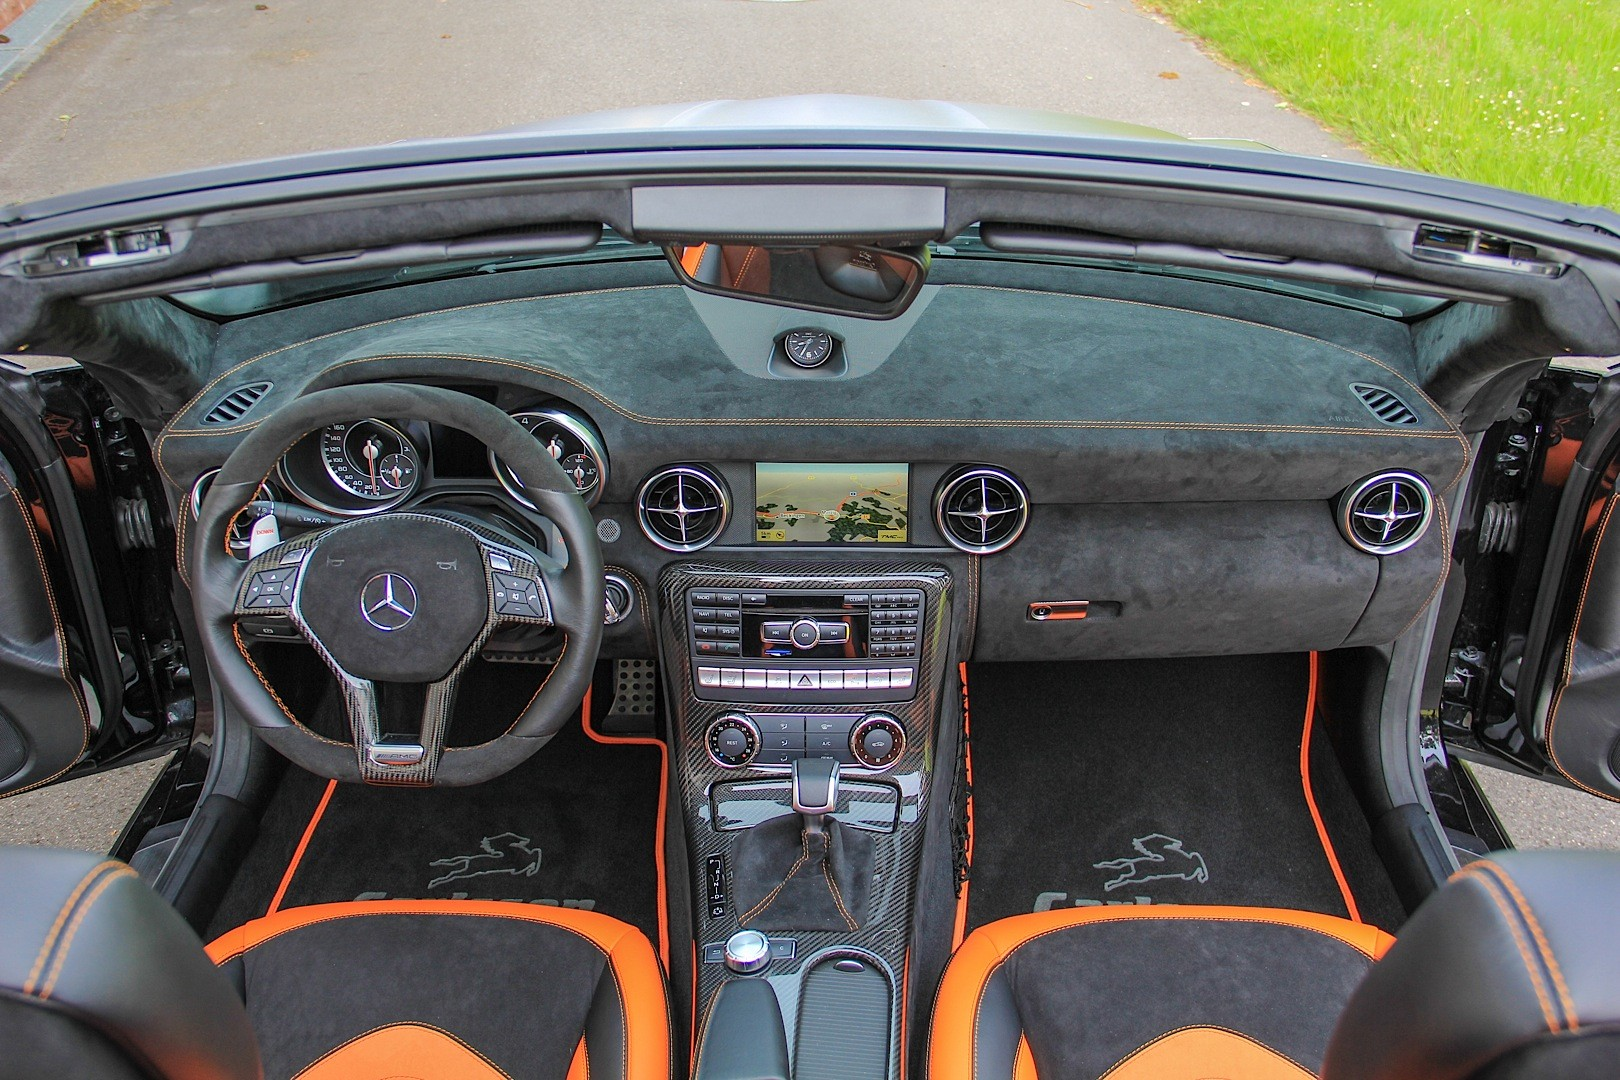 Mercedes Slk 55 Amg Gets Carlsson Interior With Orange And